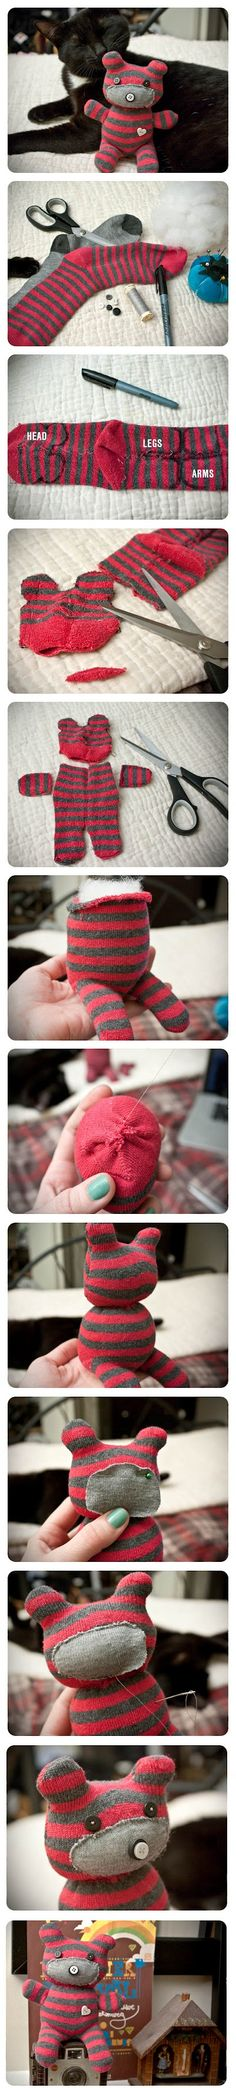 Çoraptan Oyuncak Modelleri ve Yapımı beautiful cutest funny wild basteln lustig zeichnen Sock Crafts, Cute Crafts, Fabric Crafts, Sewing Crafts, Diy And Crafts, Craft Projects, Sewing Projects, Crafts For Kids, Arts And Crafts